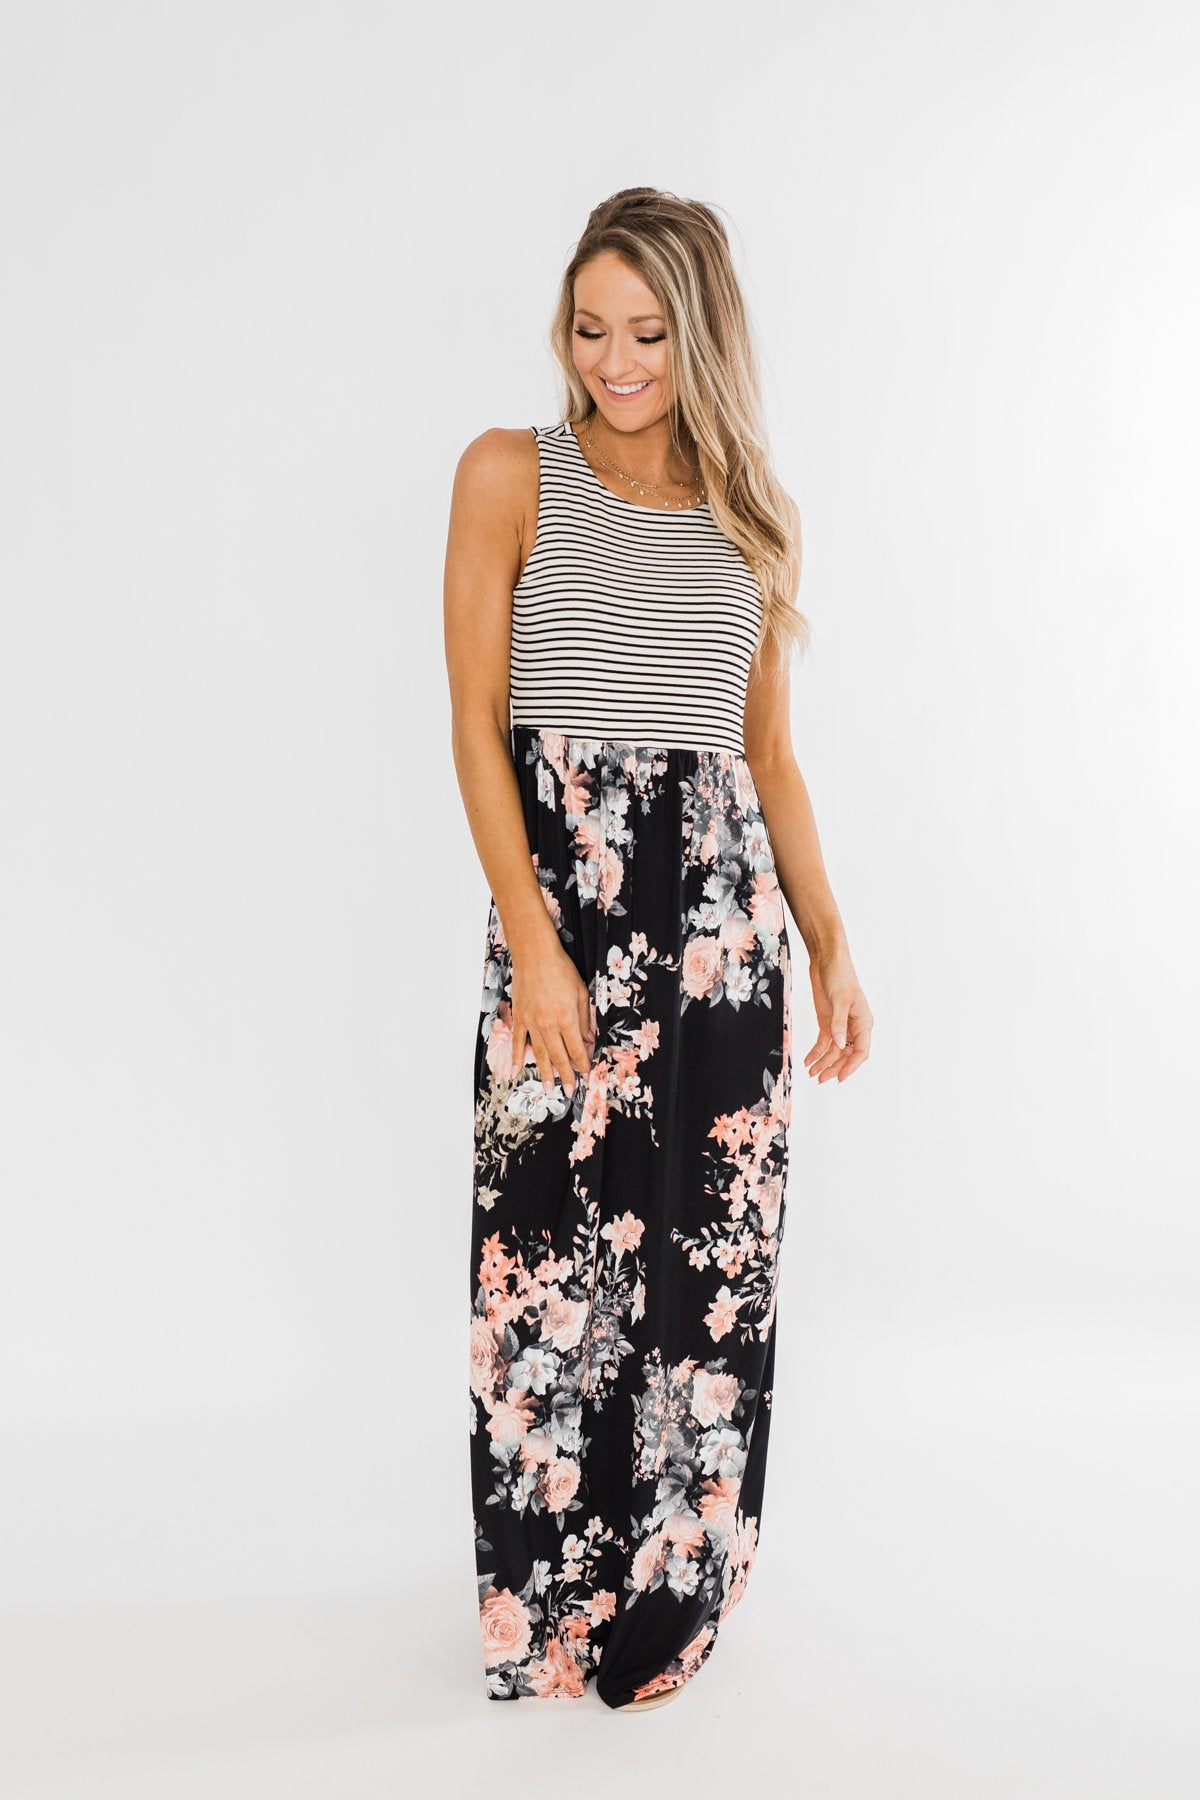 Like You Do Floral & Stripes Maxi Dress- Black & Off White